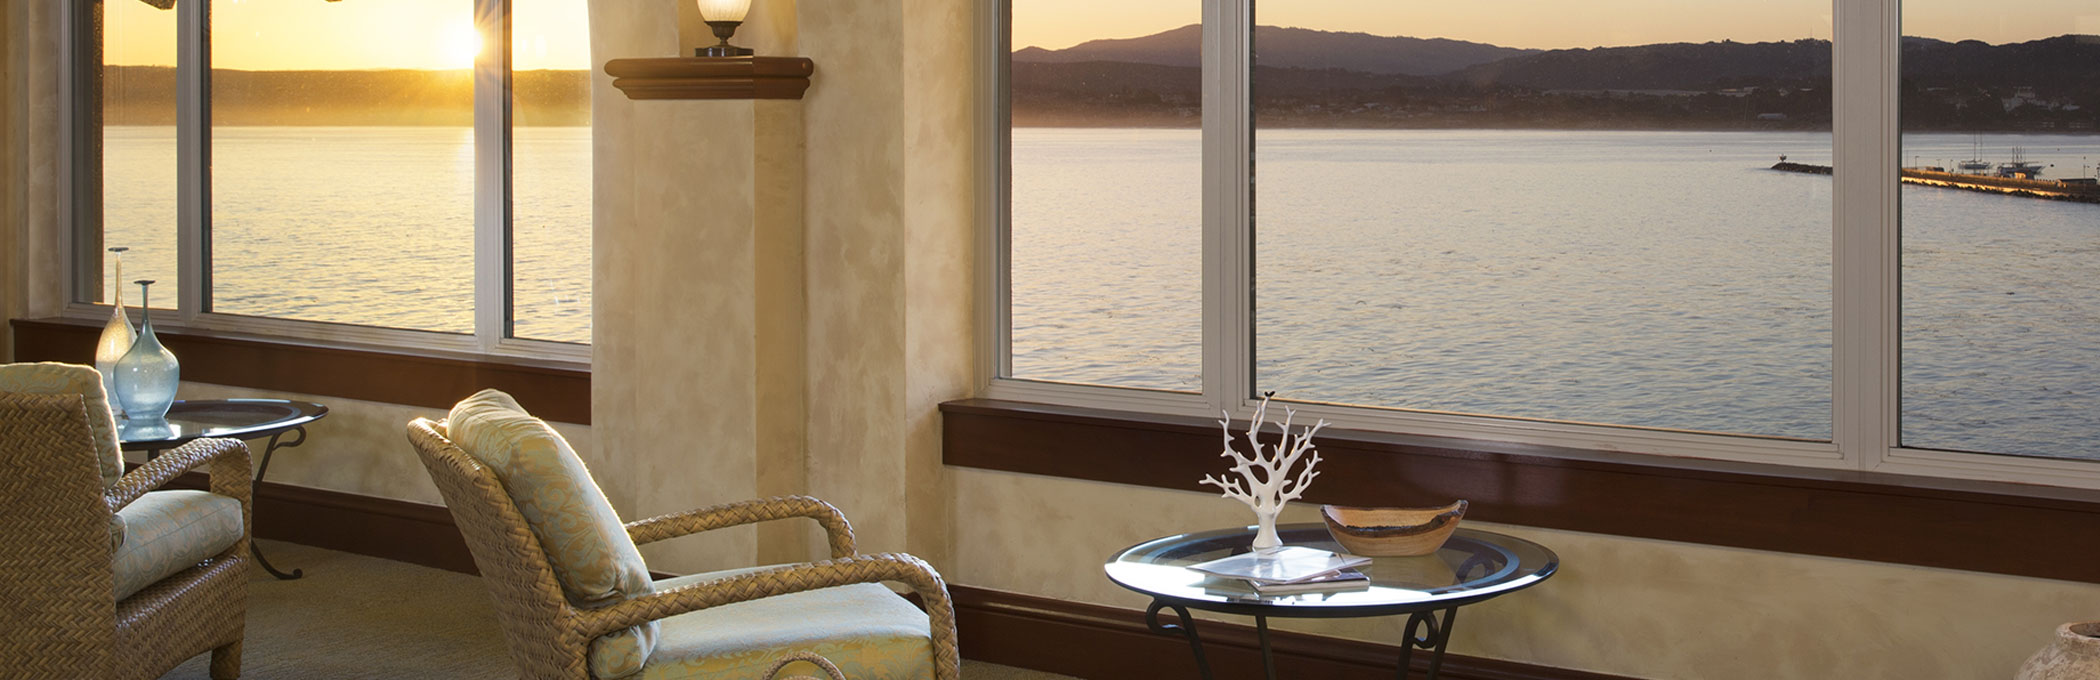 services u amenities monterey bay hotels monterey plaza hotel u spa with what  are amenities.